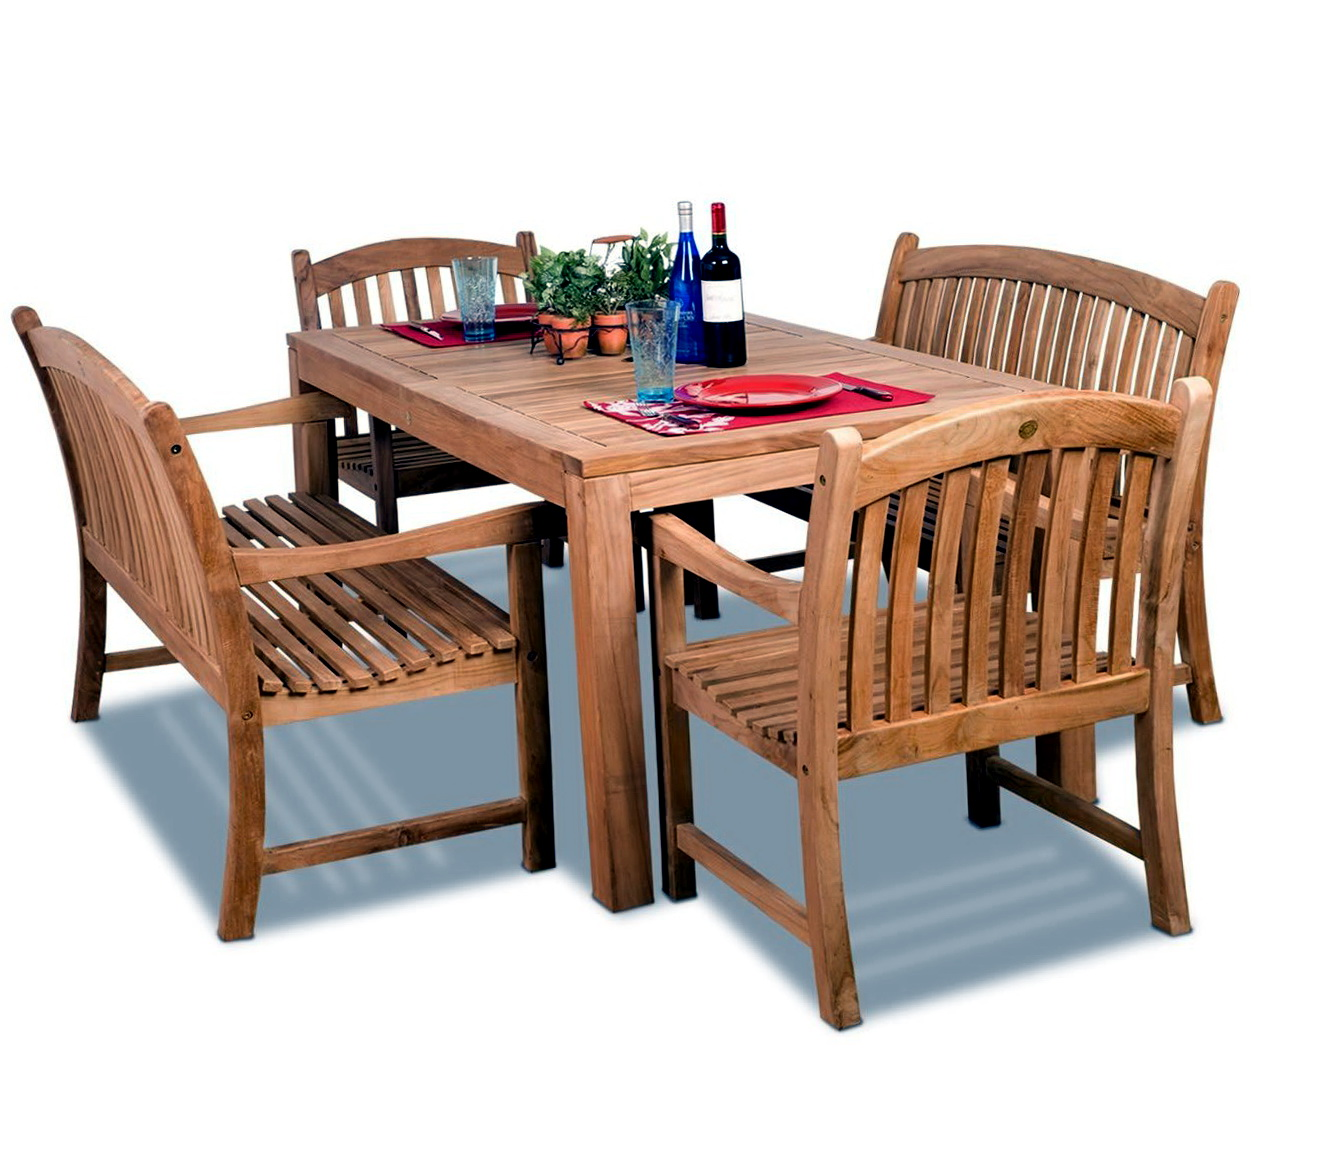 Teak Patio Furniture Lowes